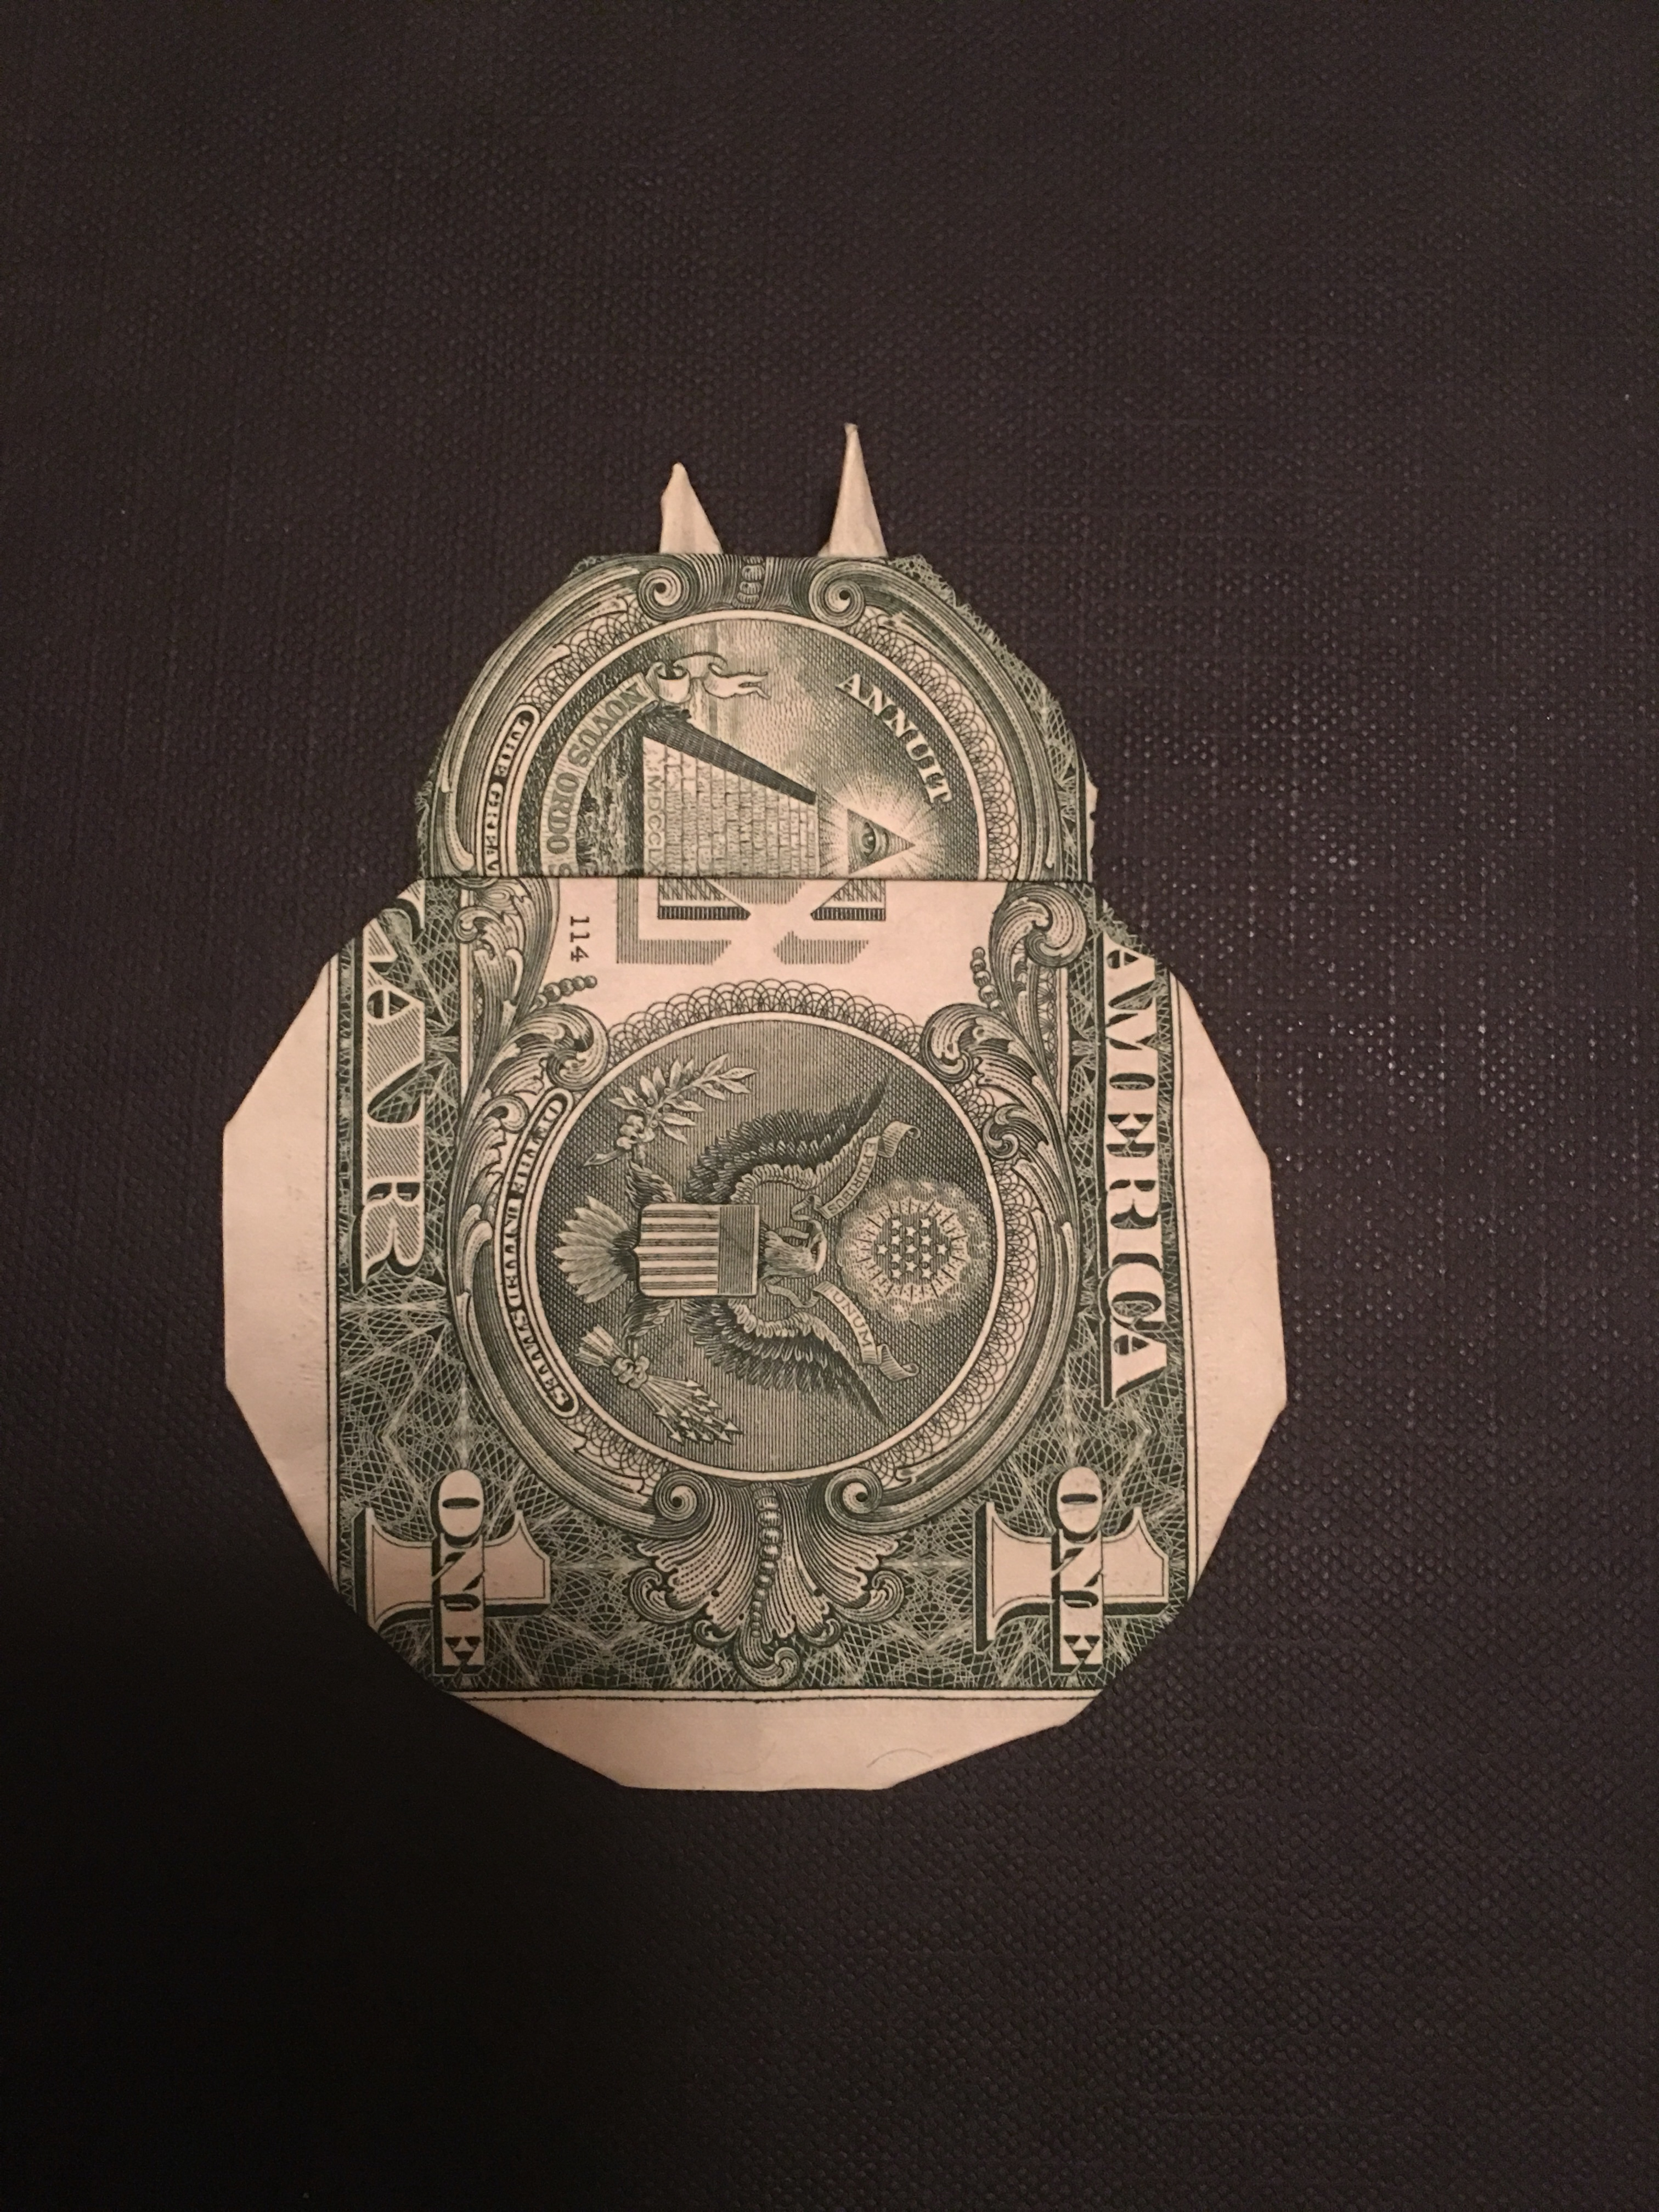 Make a Dollar Bill Origami Ninja Star | 4032x3024